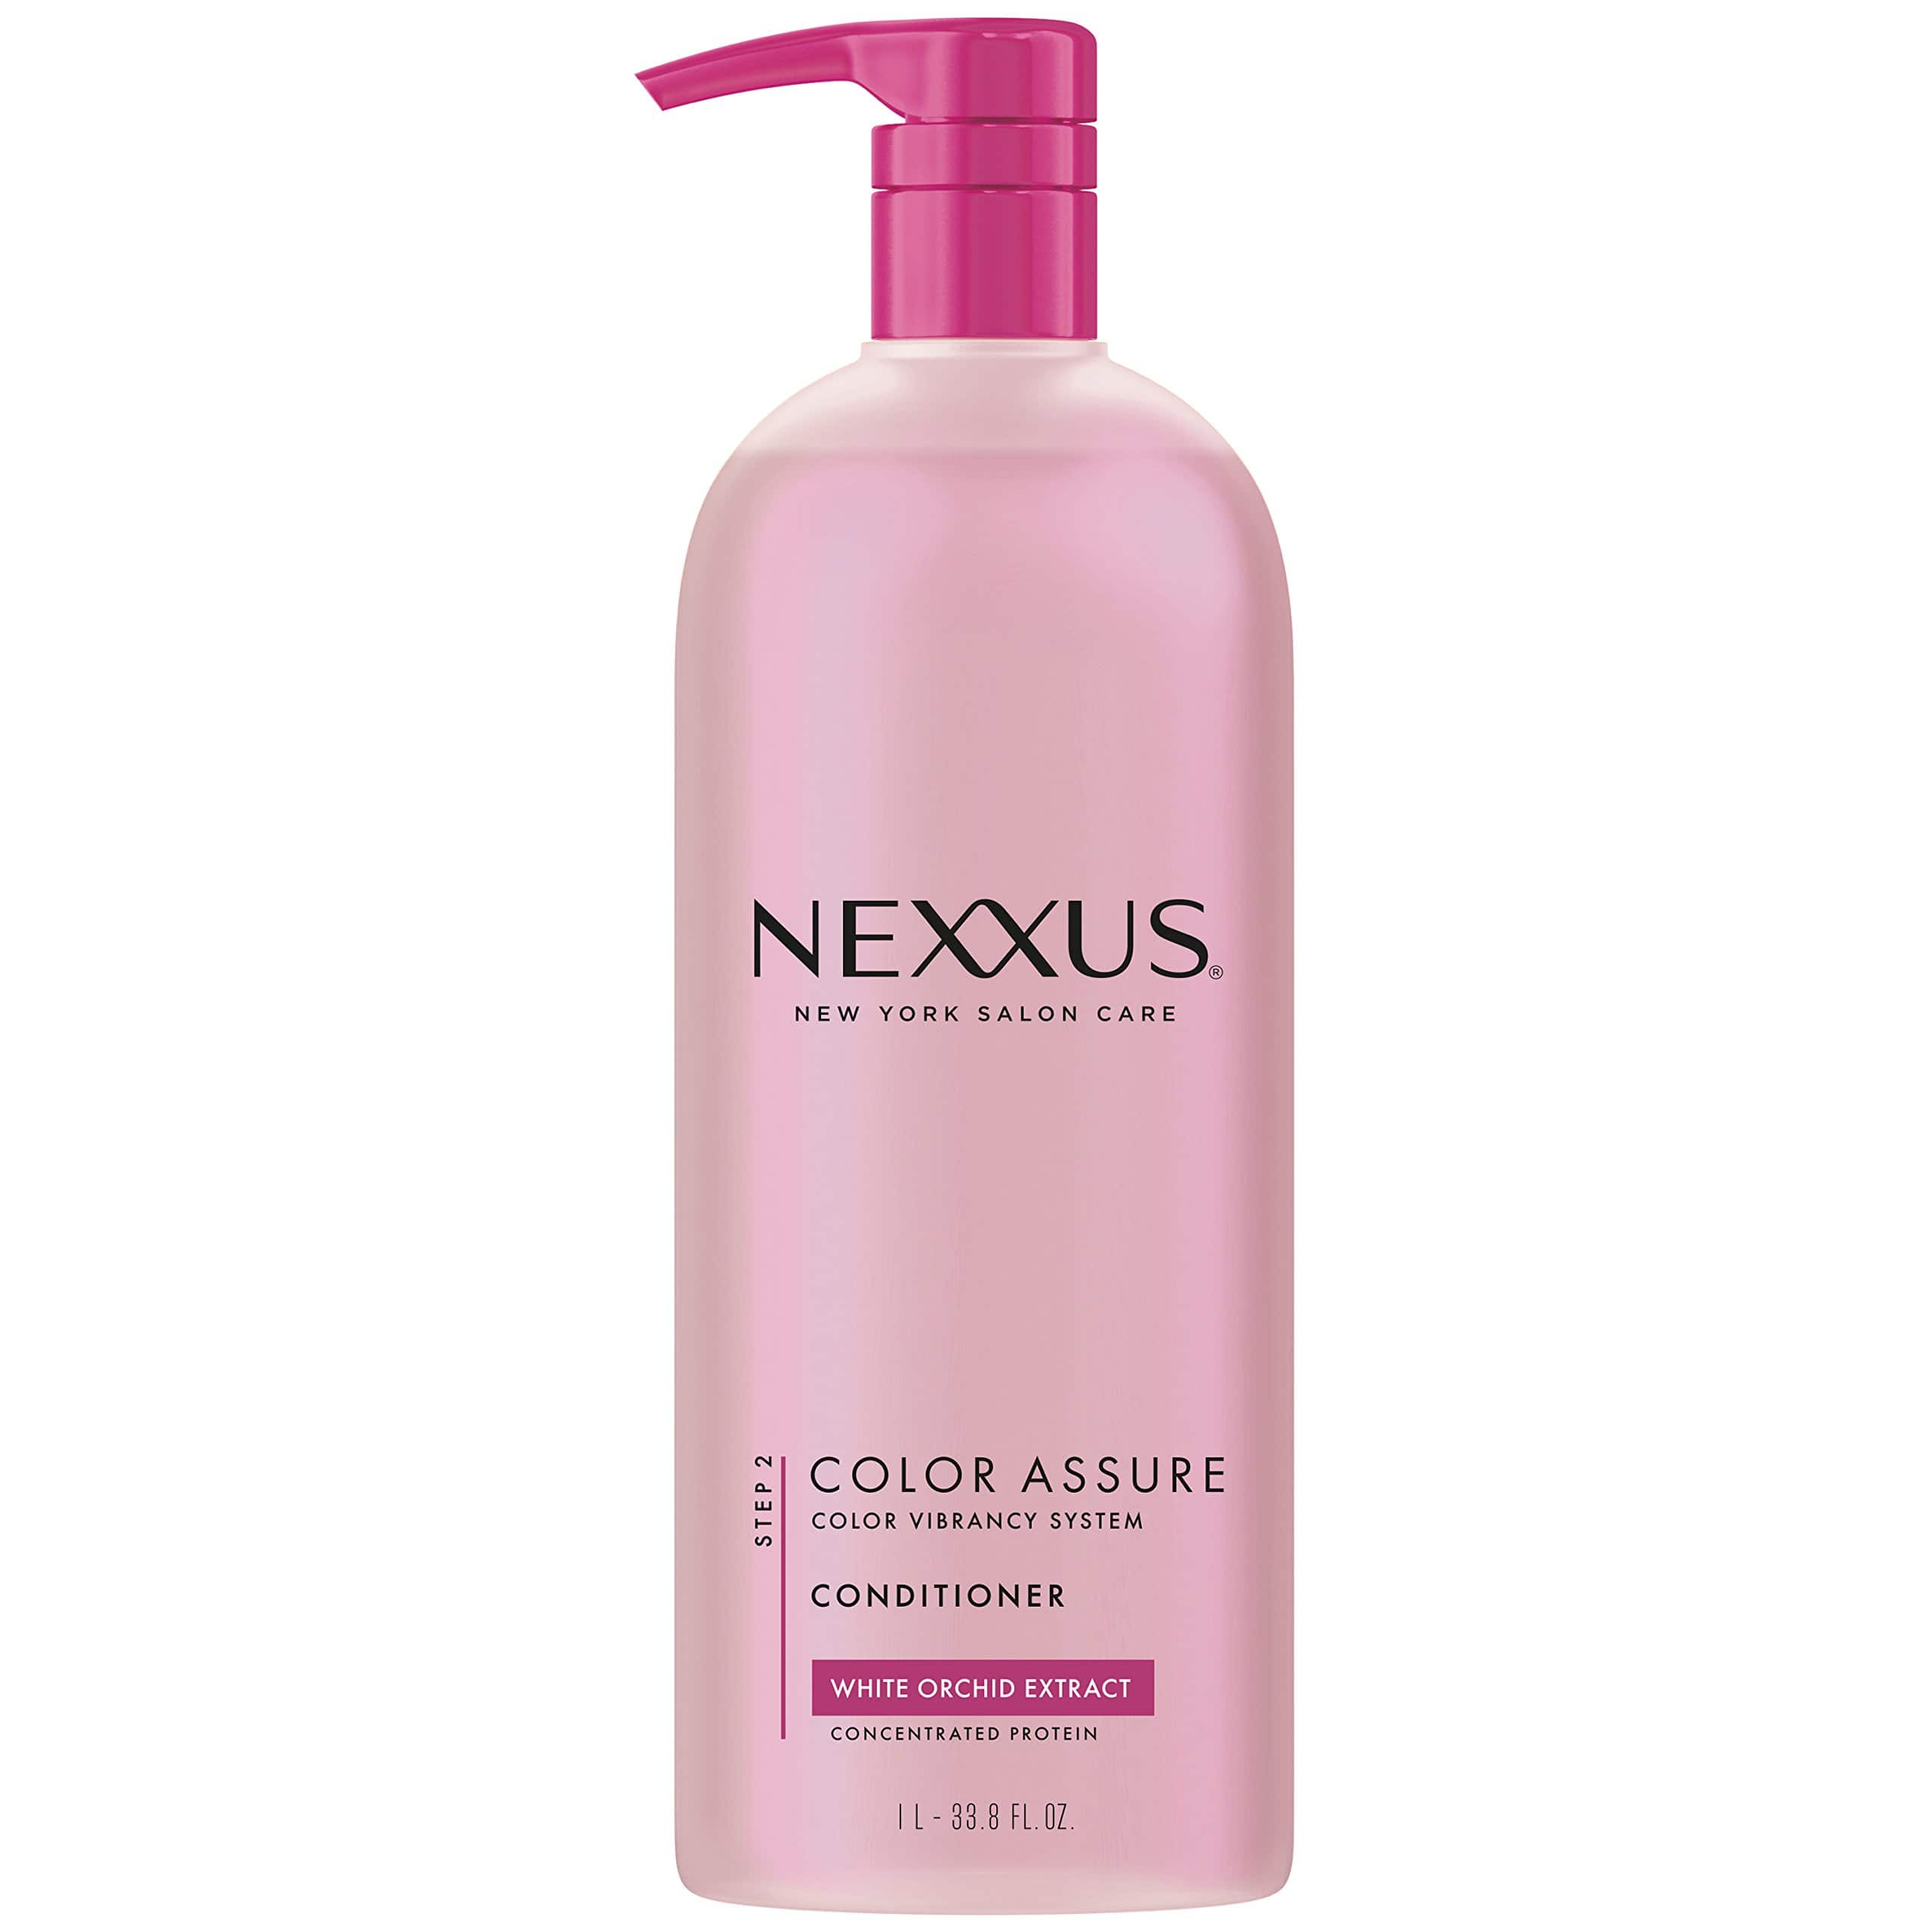 Nexxus Color Assure Shampoo, for Color Treated Hair, 33.8 oz $8.54 w/ S&S + Free S/H